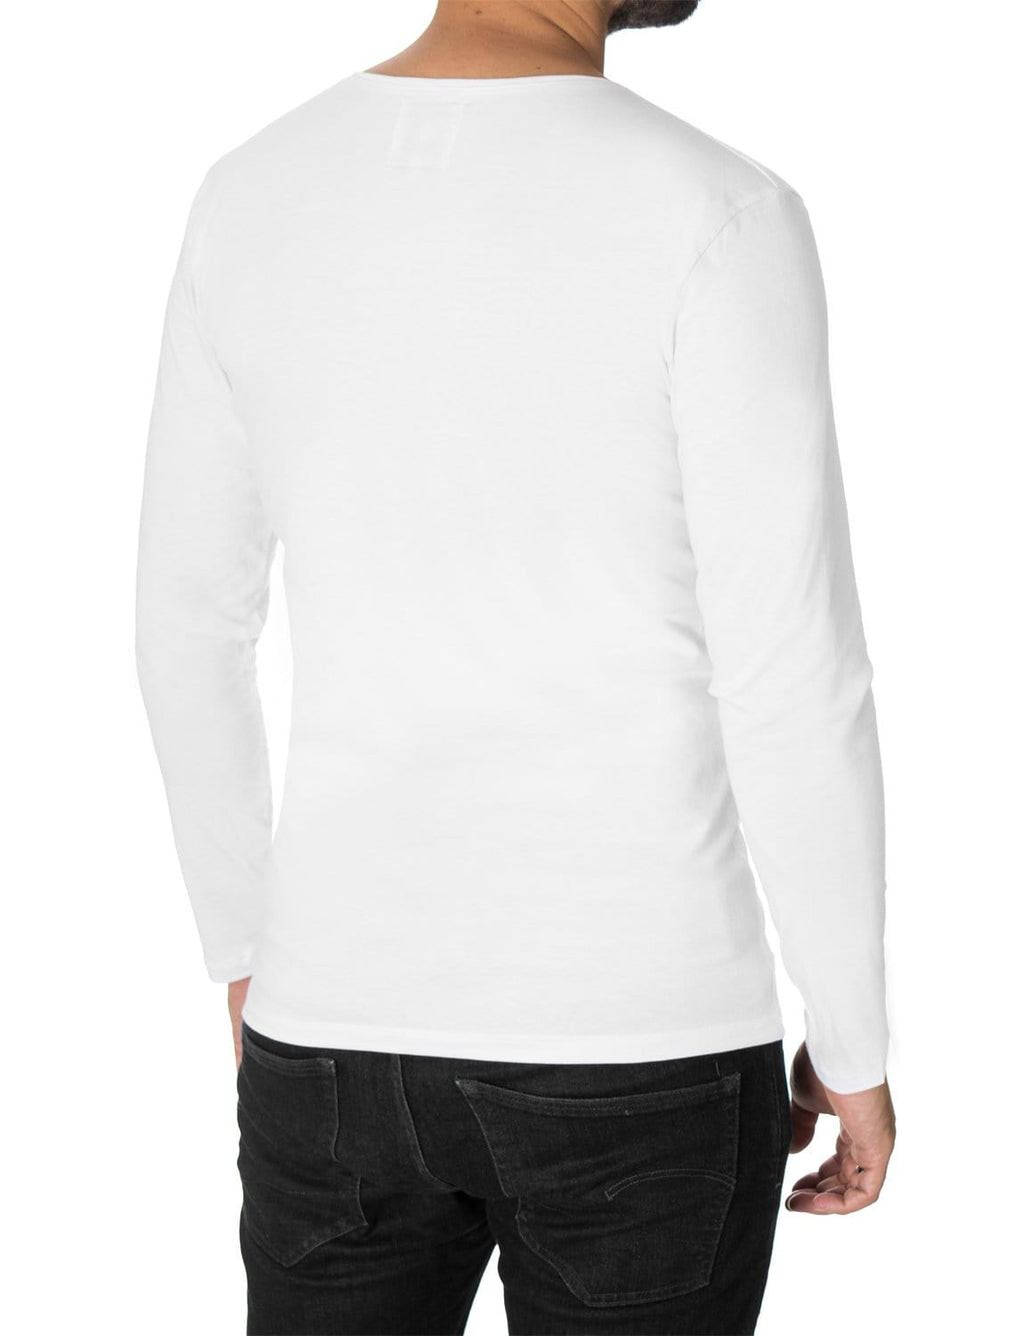 "Mens Long Sleeve T-shirt ""Born Free"" White (MOD1061LS)"